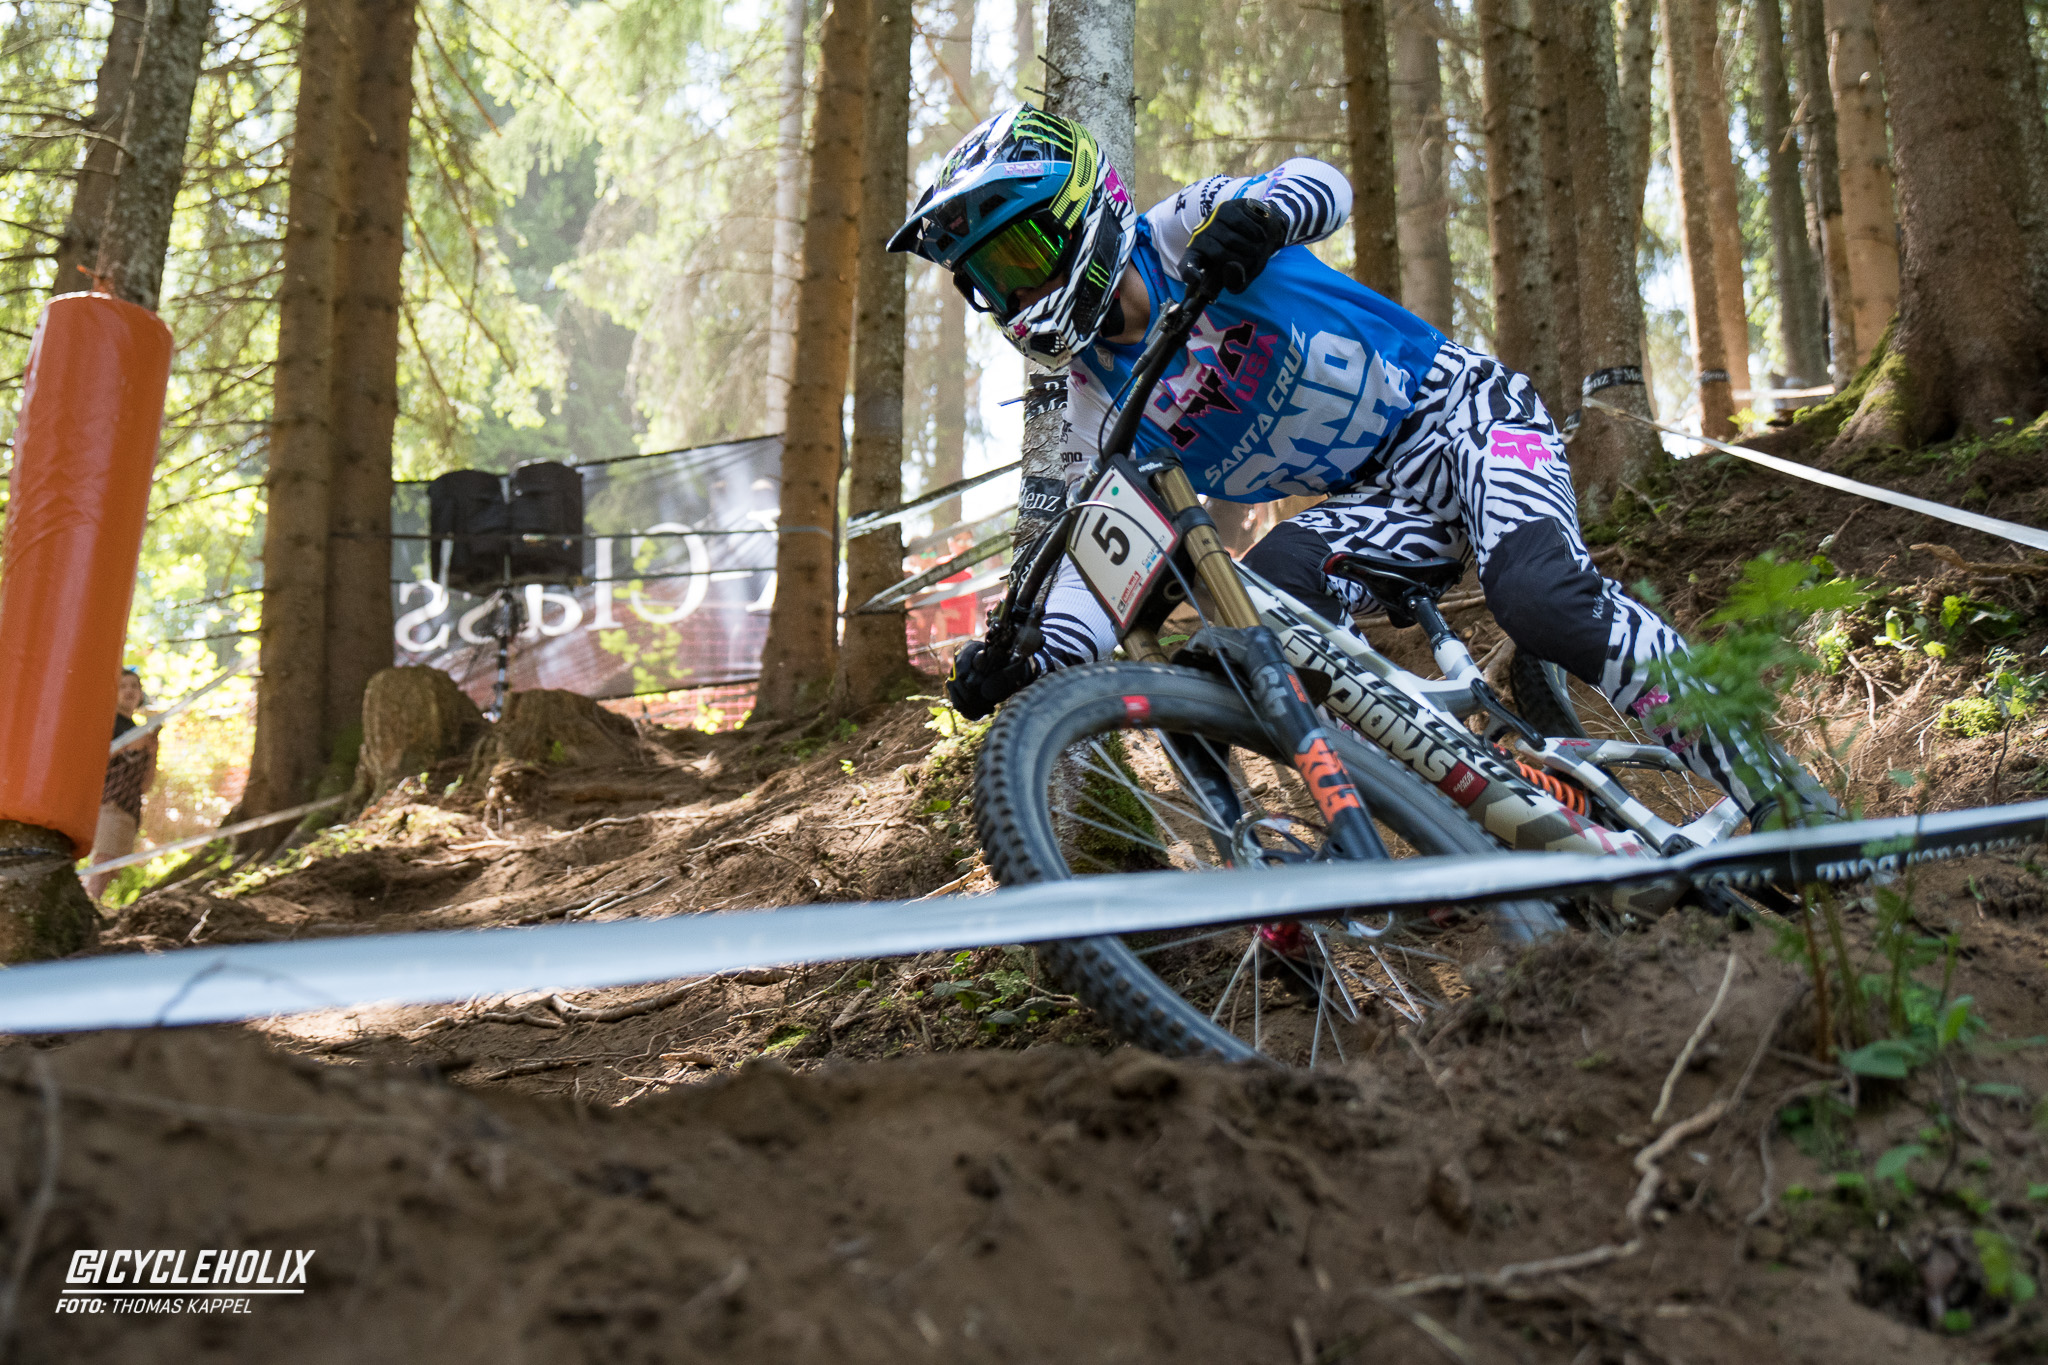 2019 Downhill Worldcup Leogang Finale Action 26 Cycleholix